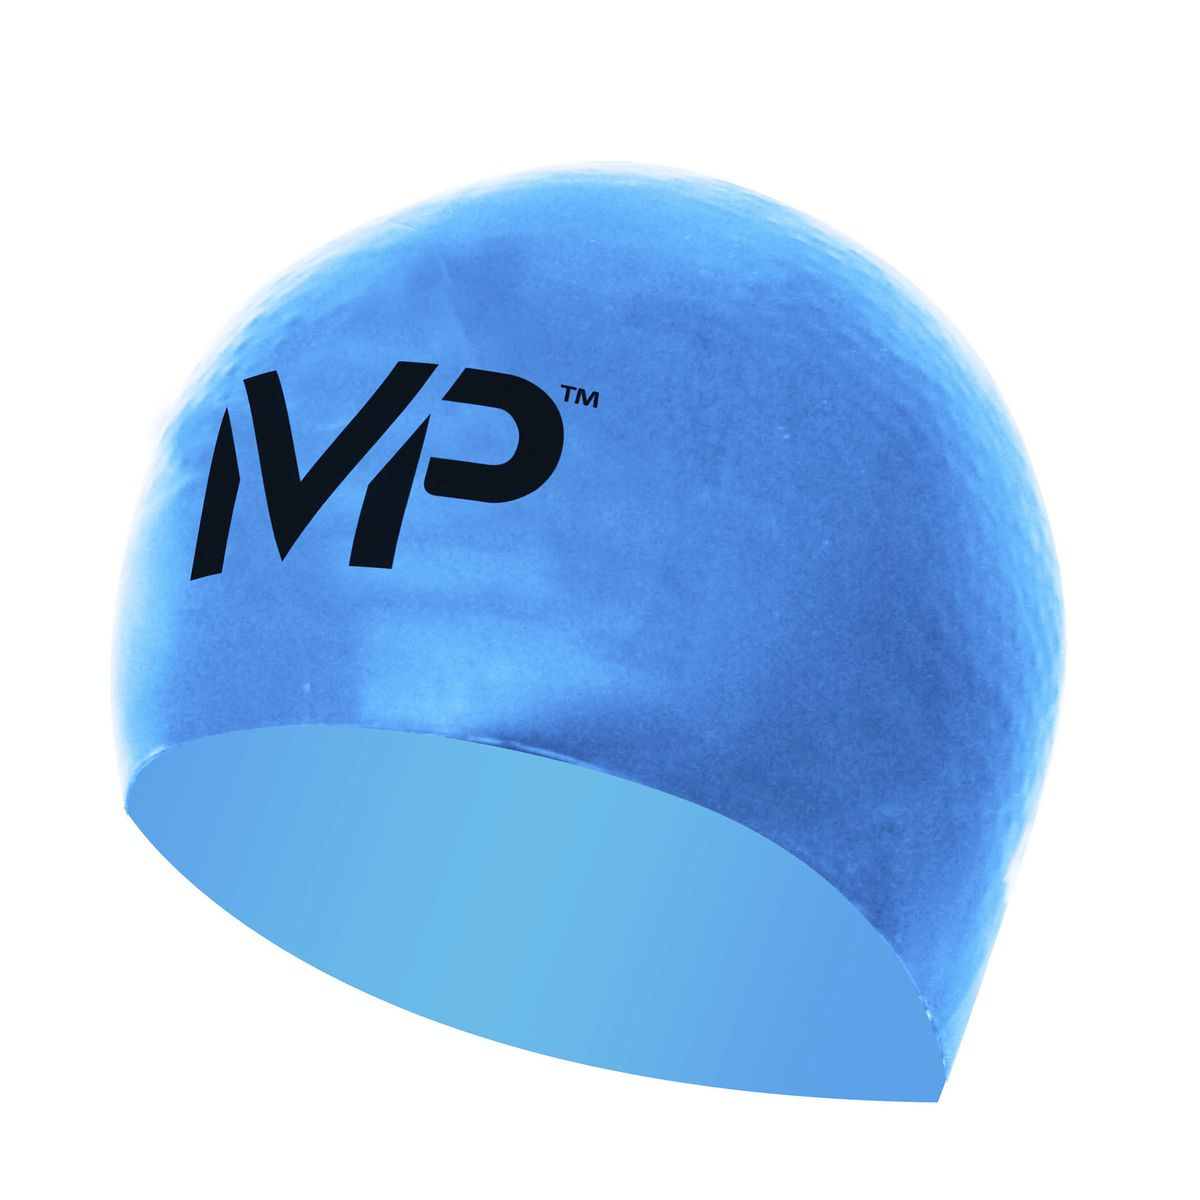 MP Michael Phelps 3D Dome Race Cap | Hovedbeklædning